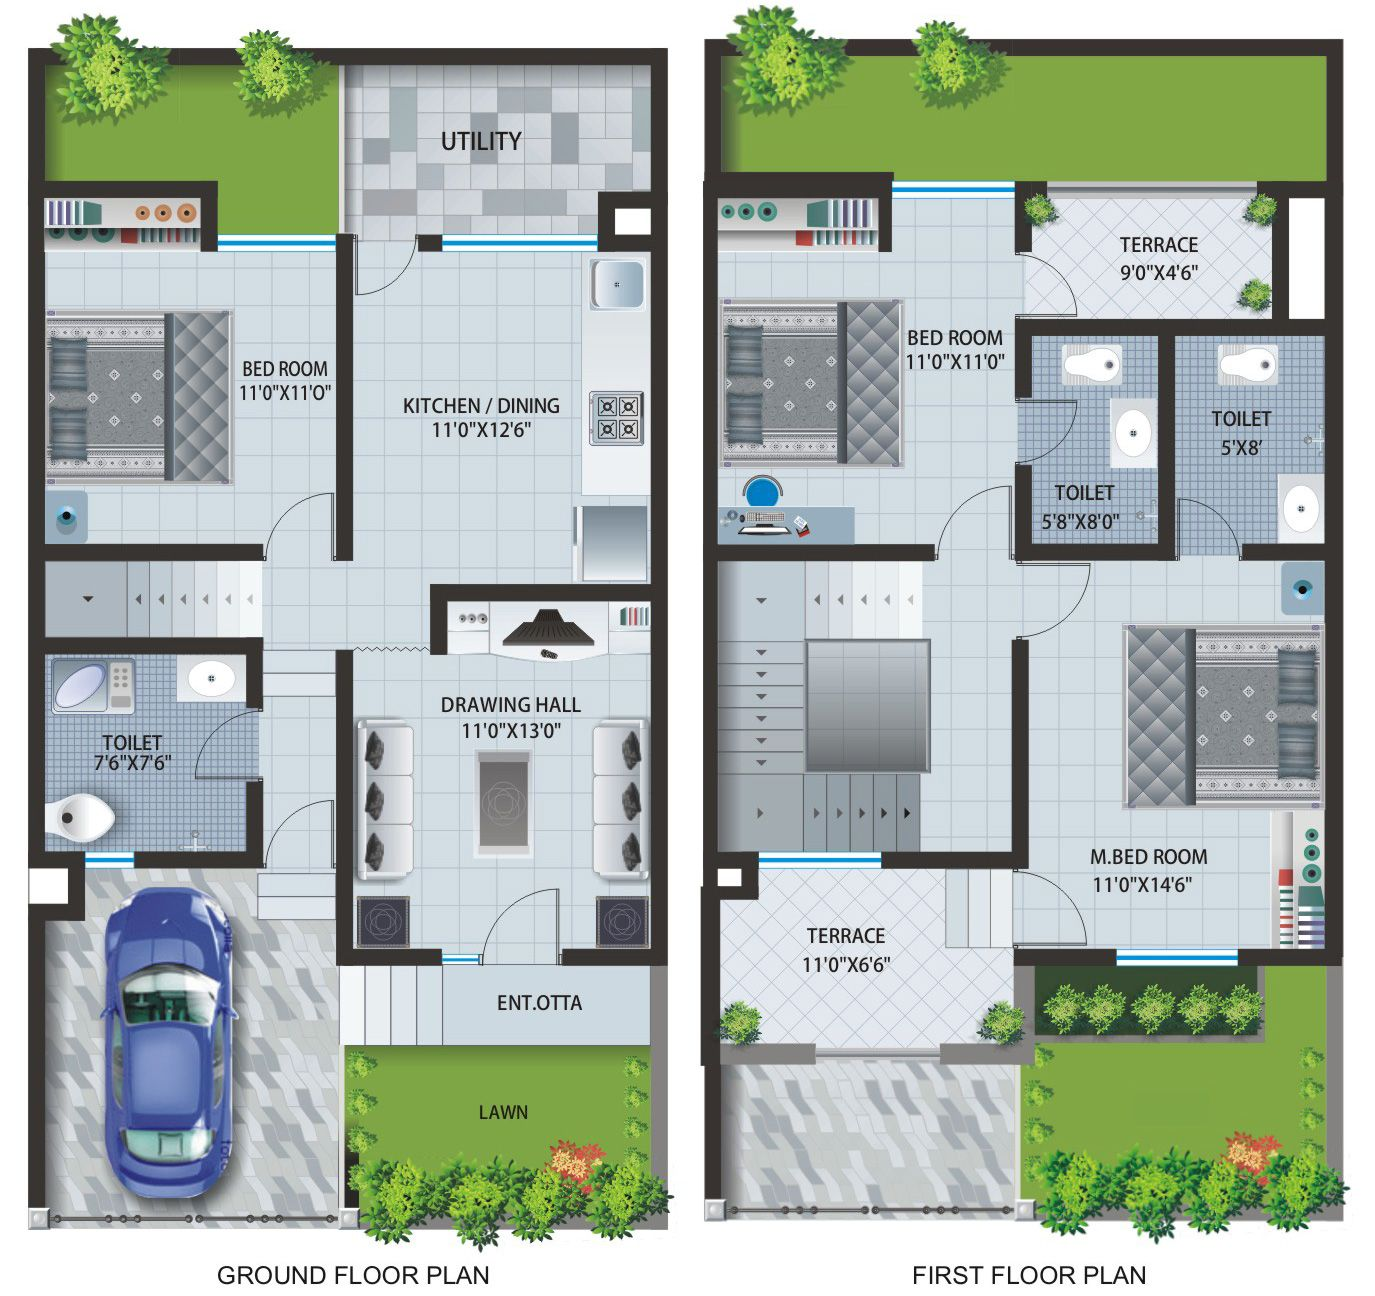 House design and layout - Floor Plans Of Apartments Row Houses At Caroline Baner